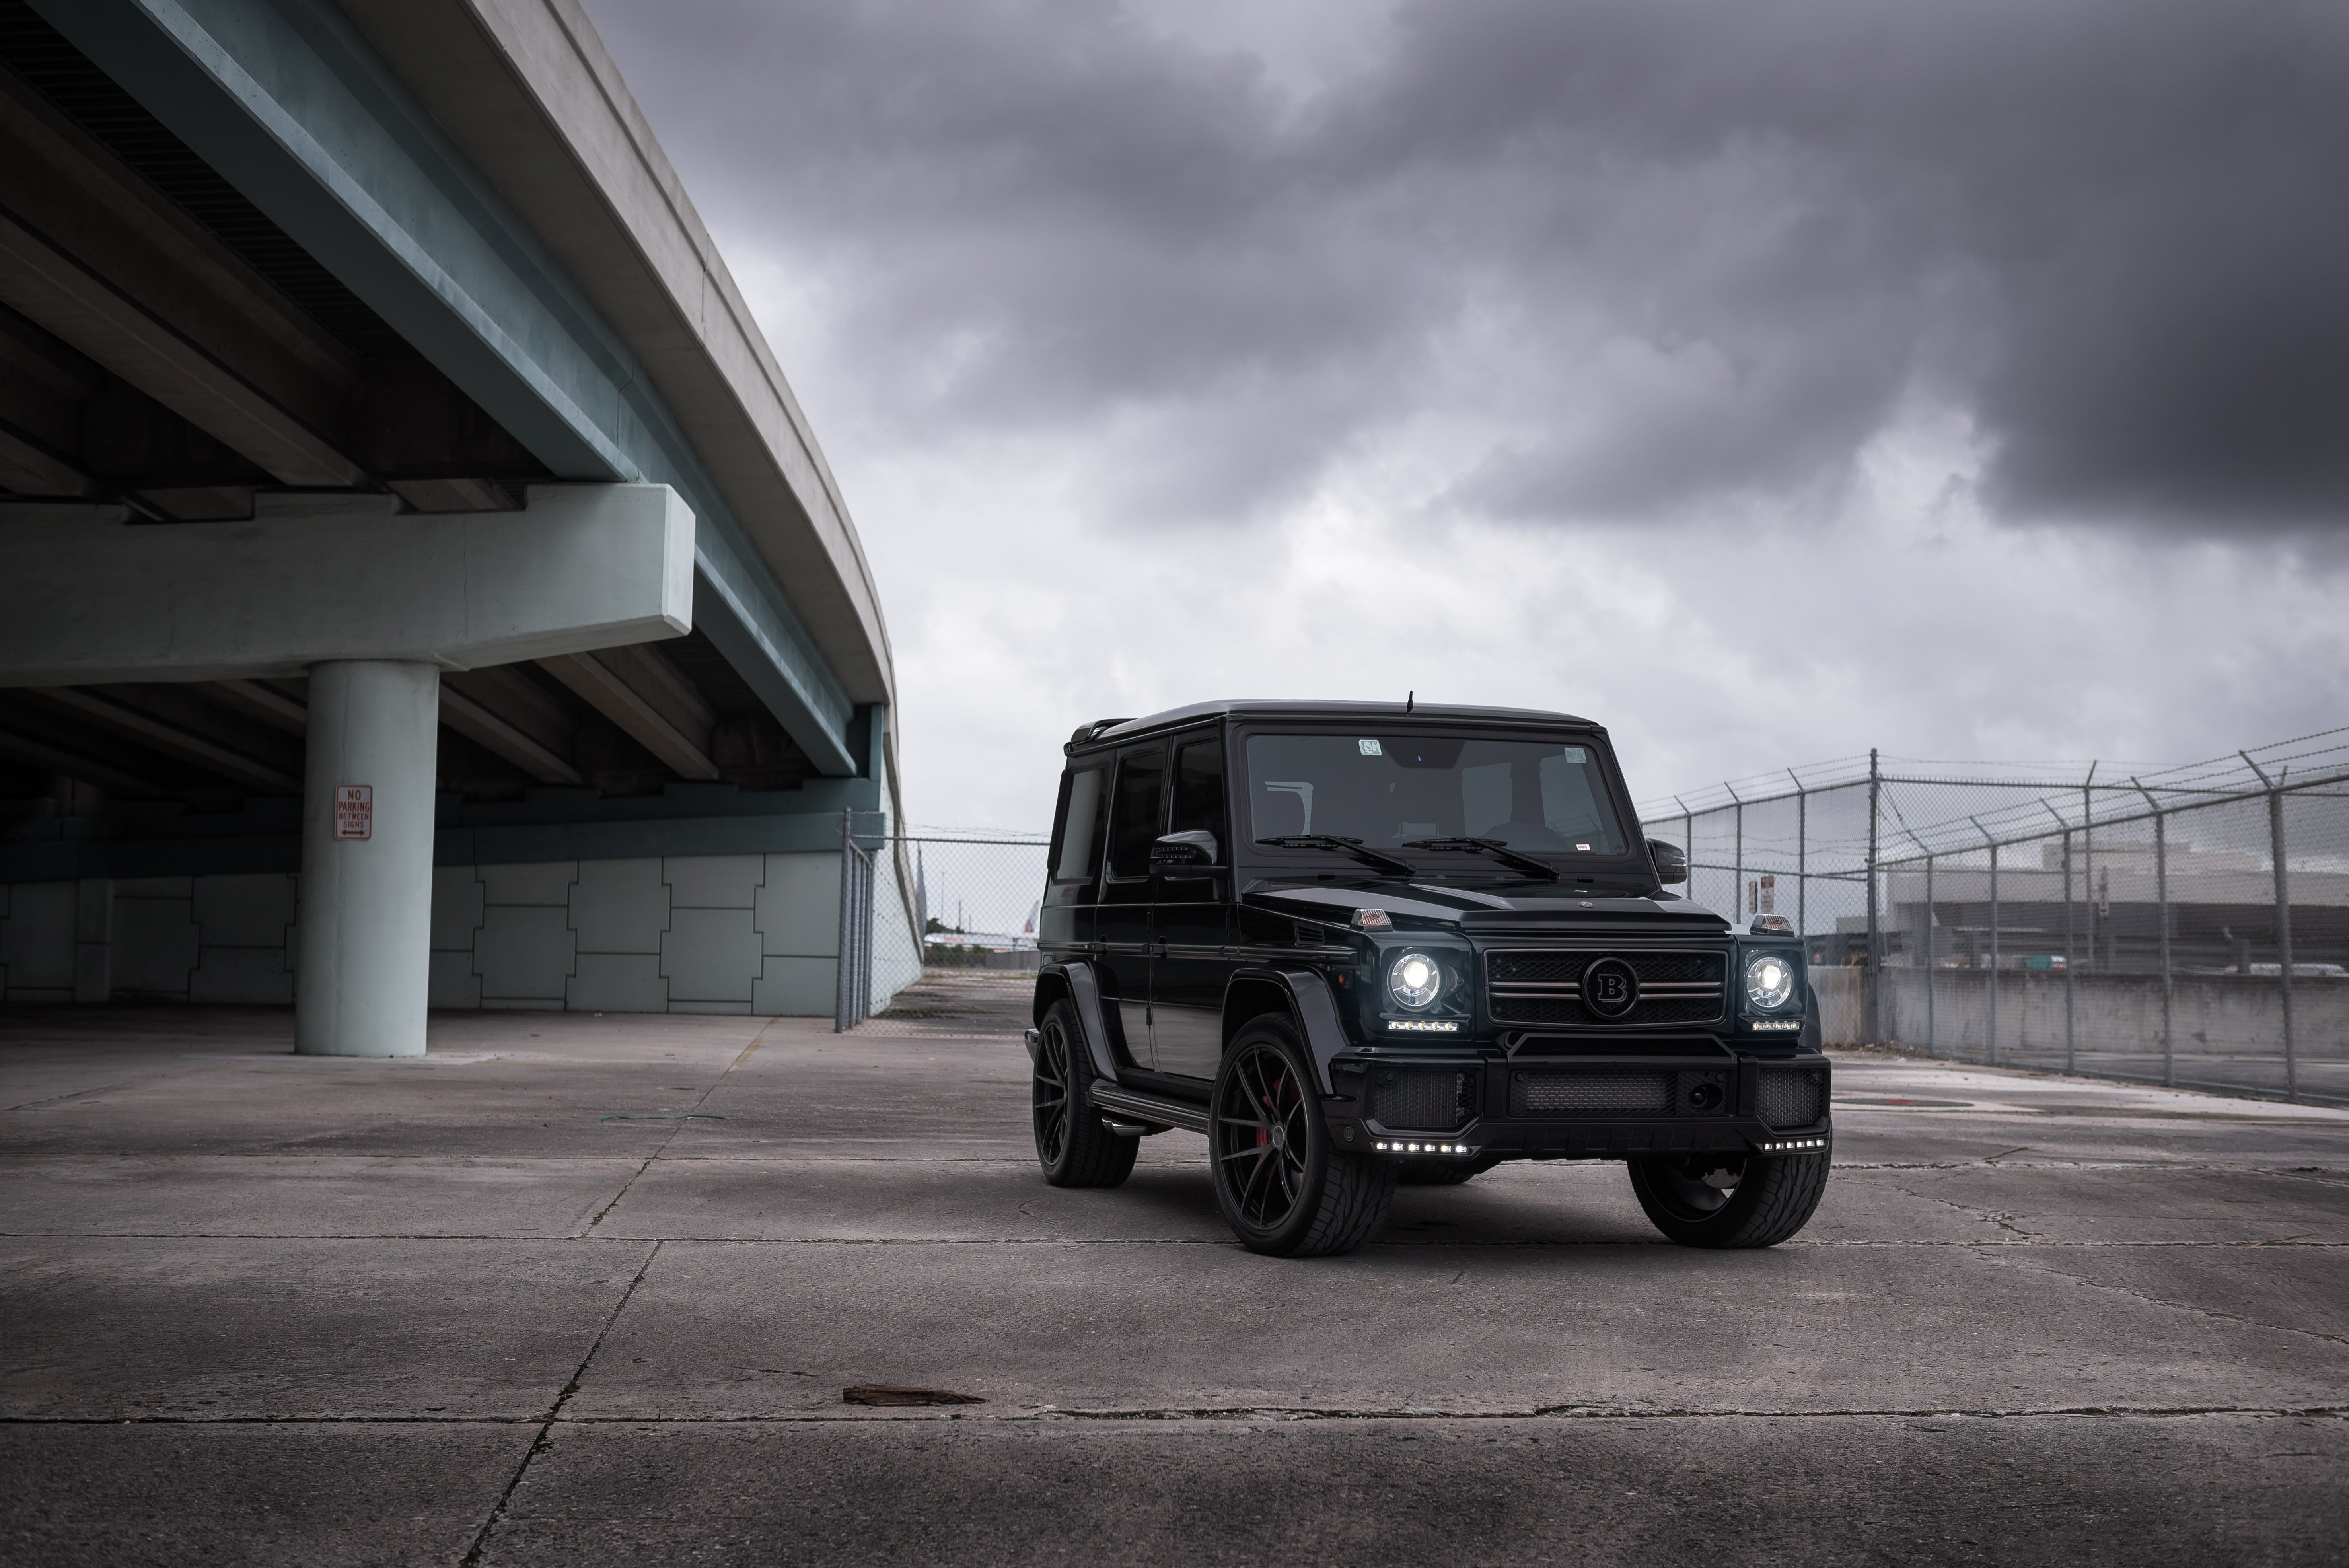 MC Customs Vellano Mercedes G63 wallpaper | 5905x3942 ...